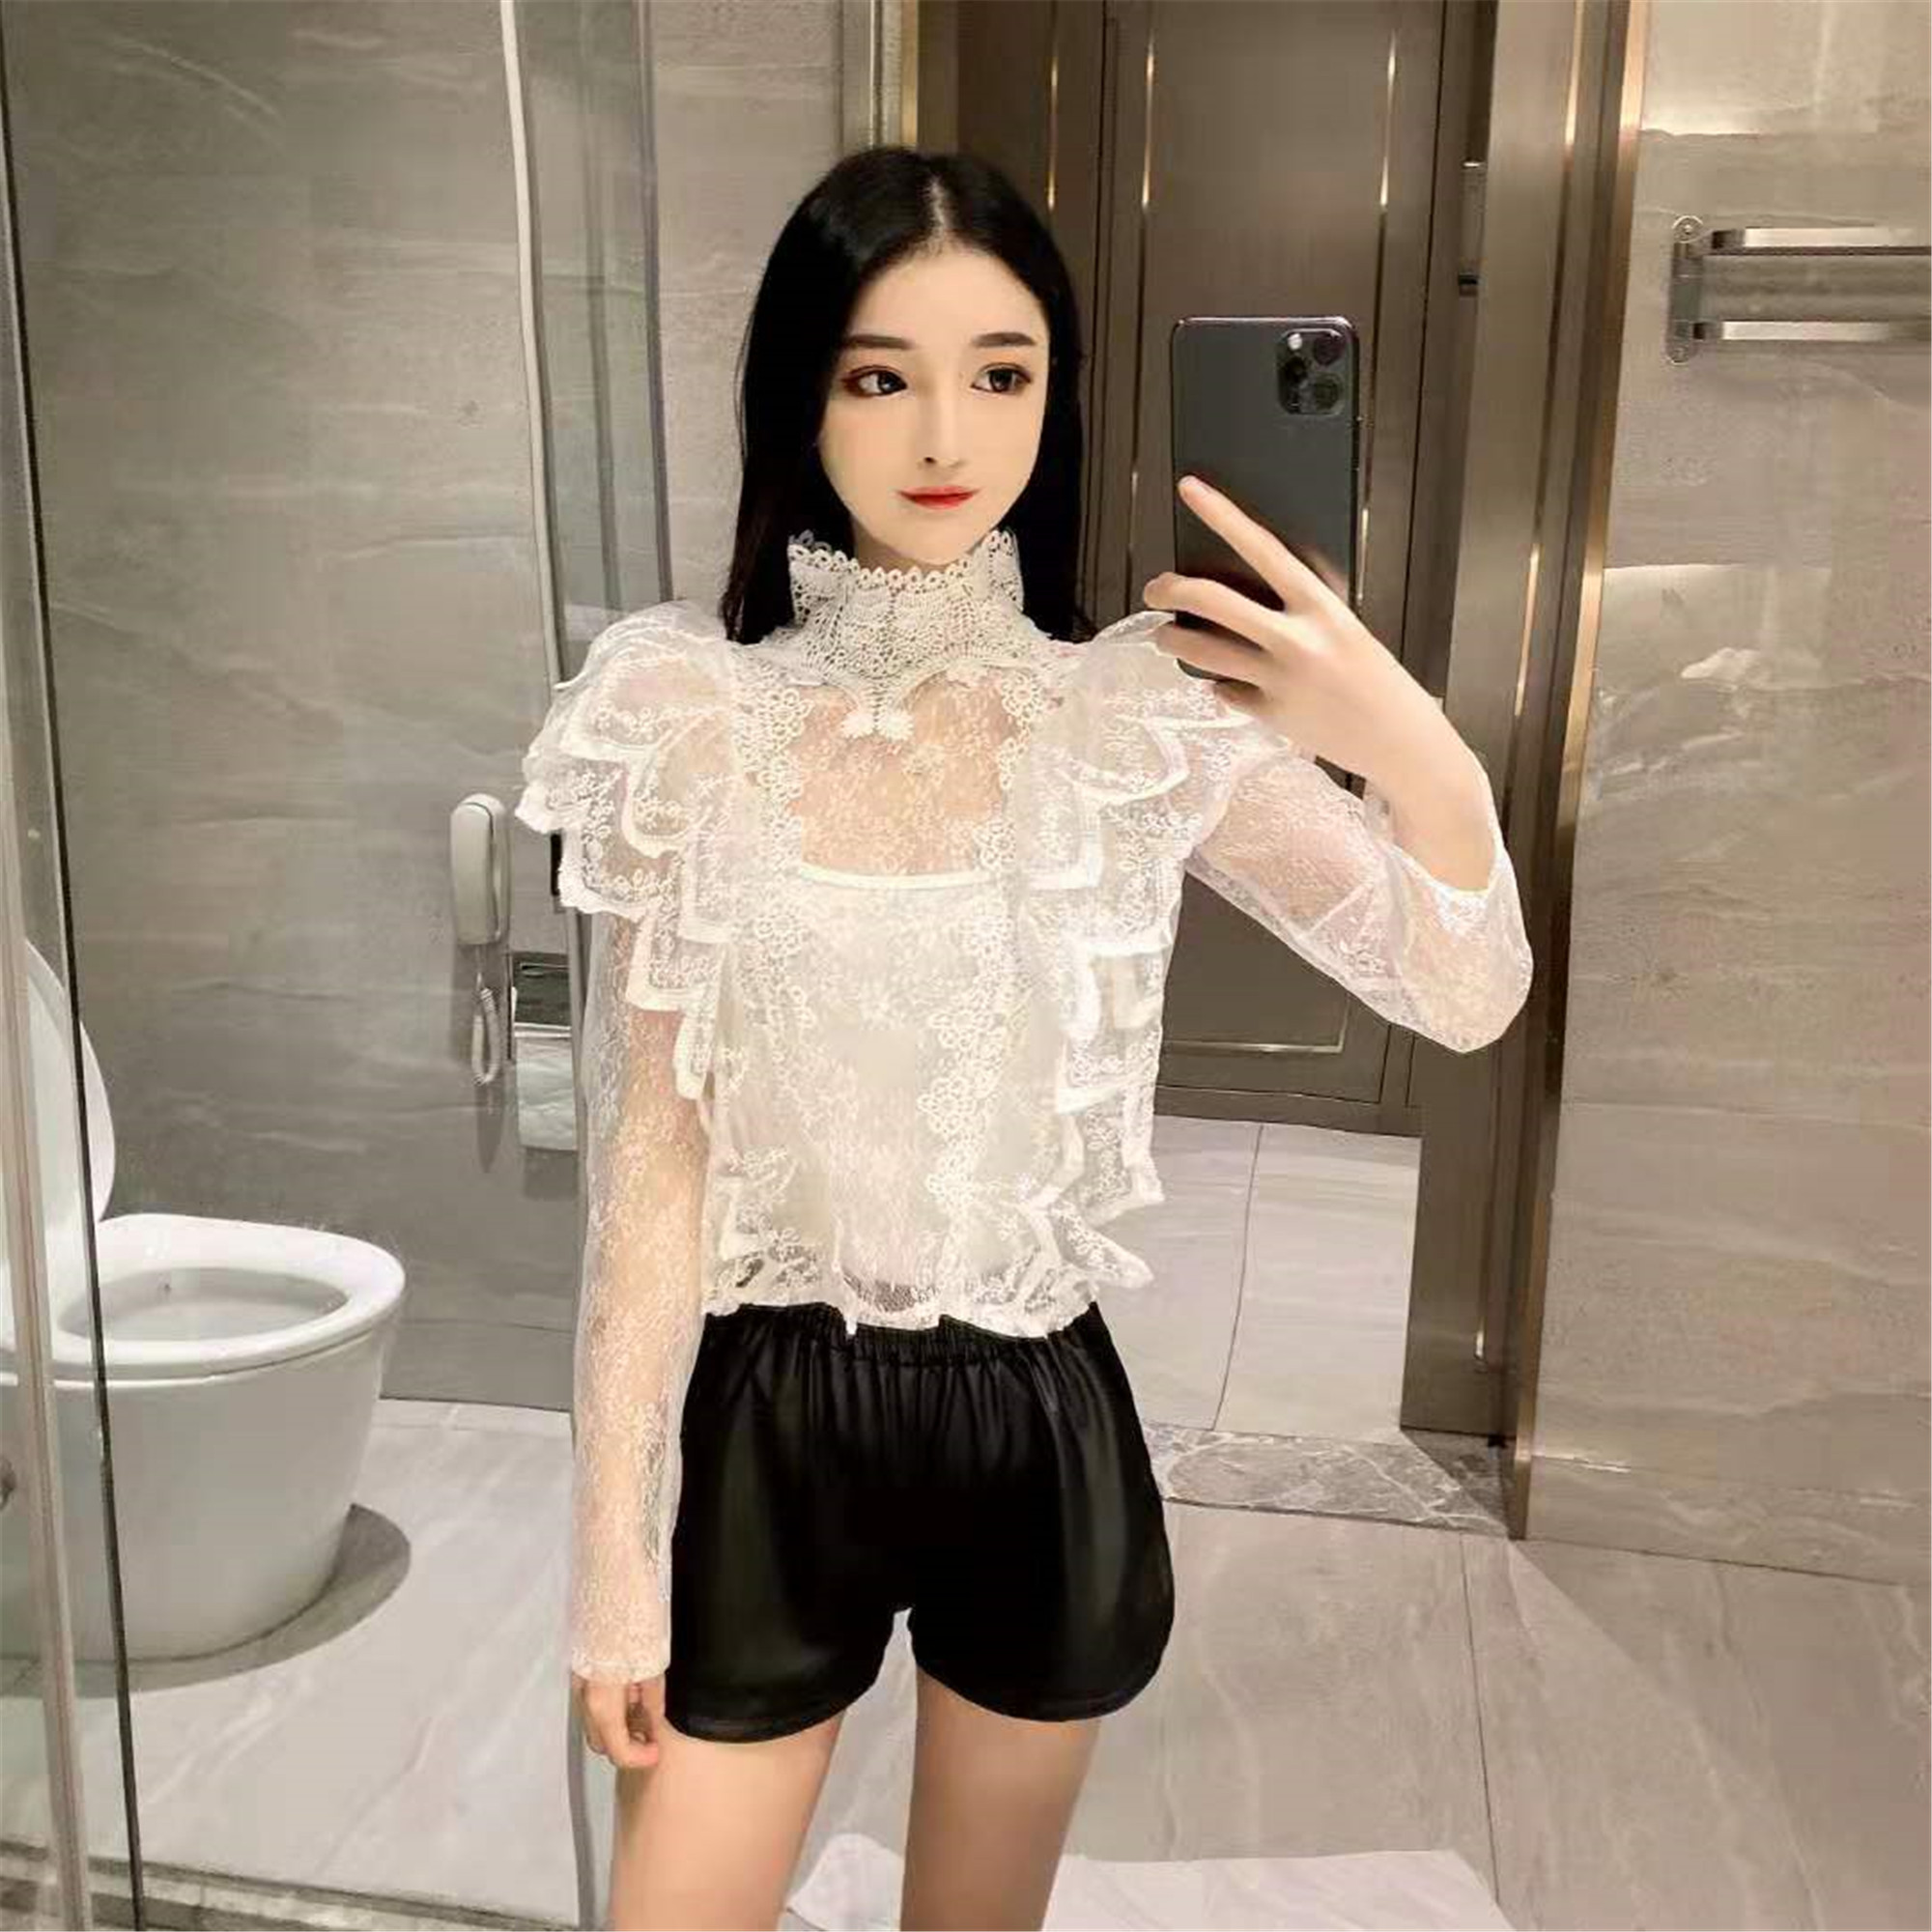 Lace Shirt Women Hollow Transparent Short Stand-Collar Sexy Shirt Ladies White Blouse 2020 Spring Tops Women's Tops Blusas Mujer